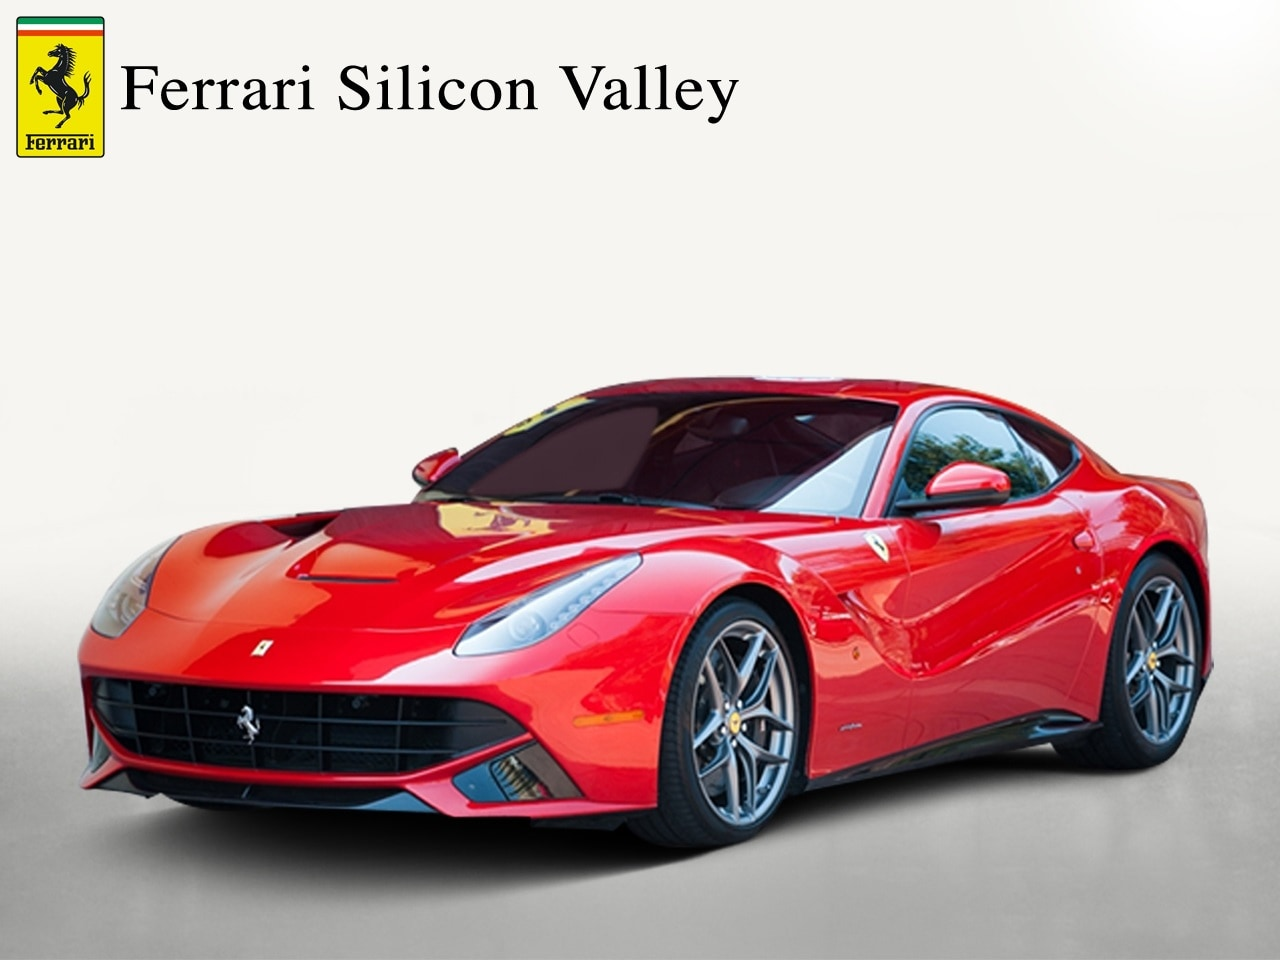 Certified Pre-Owned 2014 Ferrari F12berlinetta Coupe For Sale Beverly Hills, California